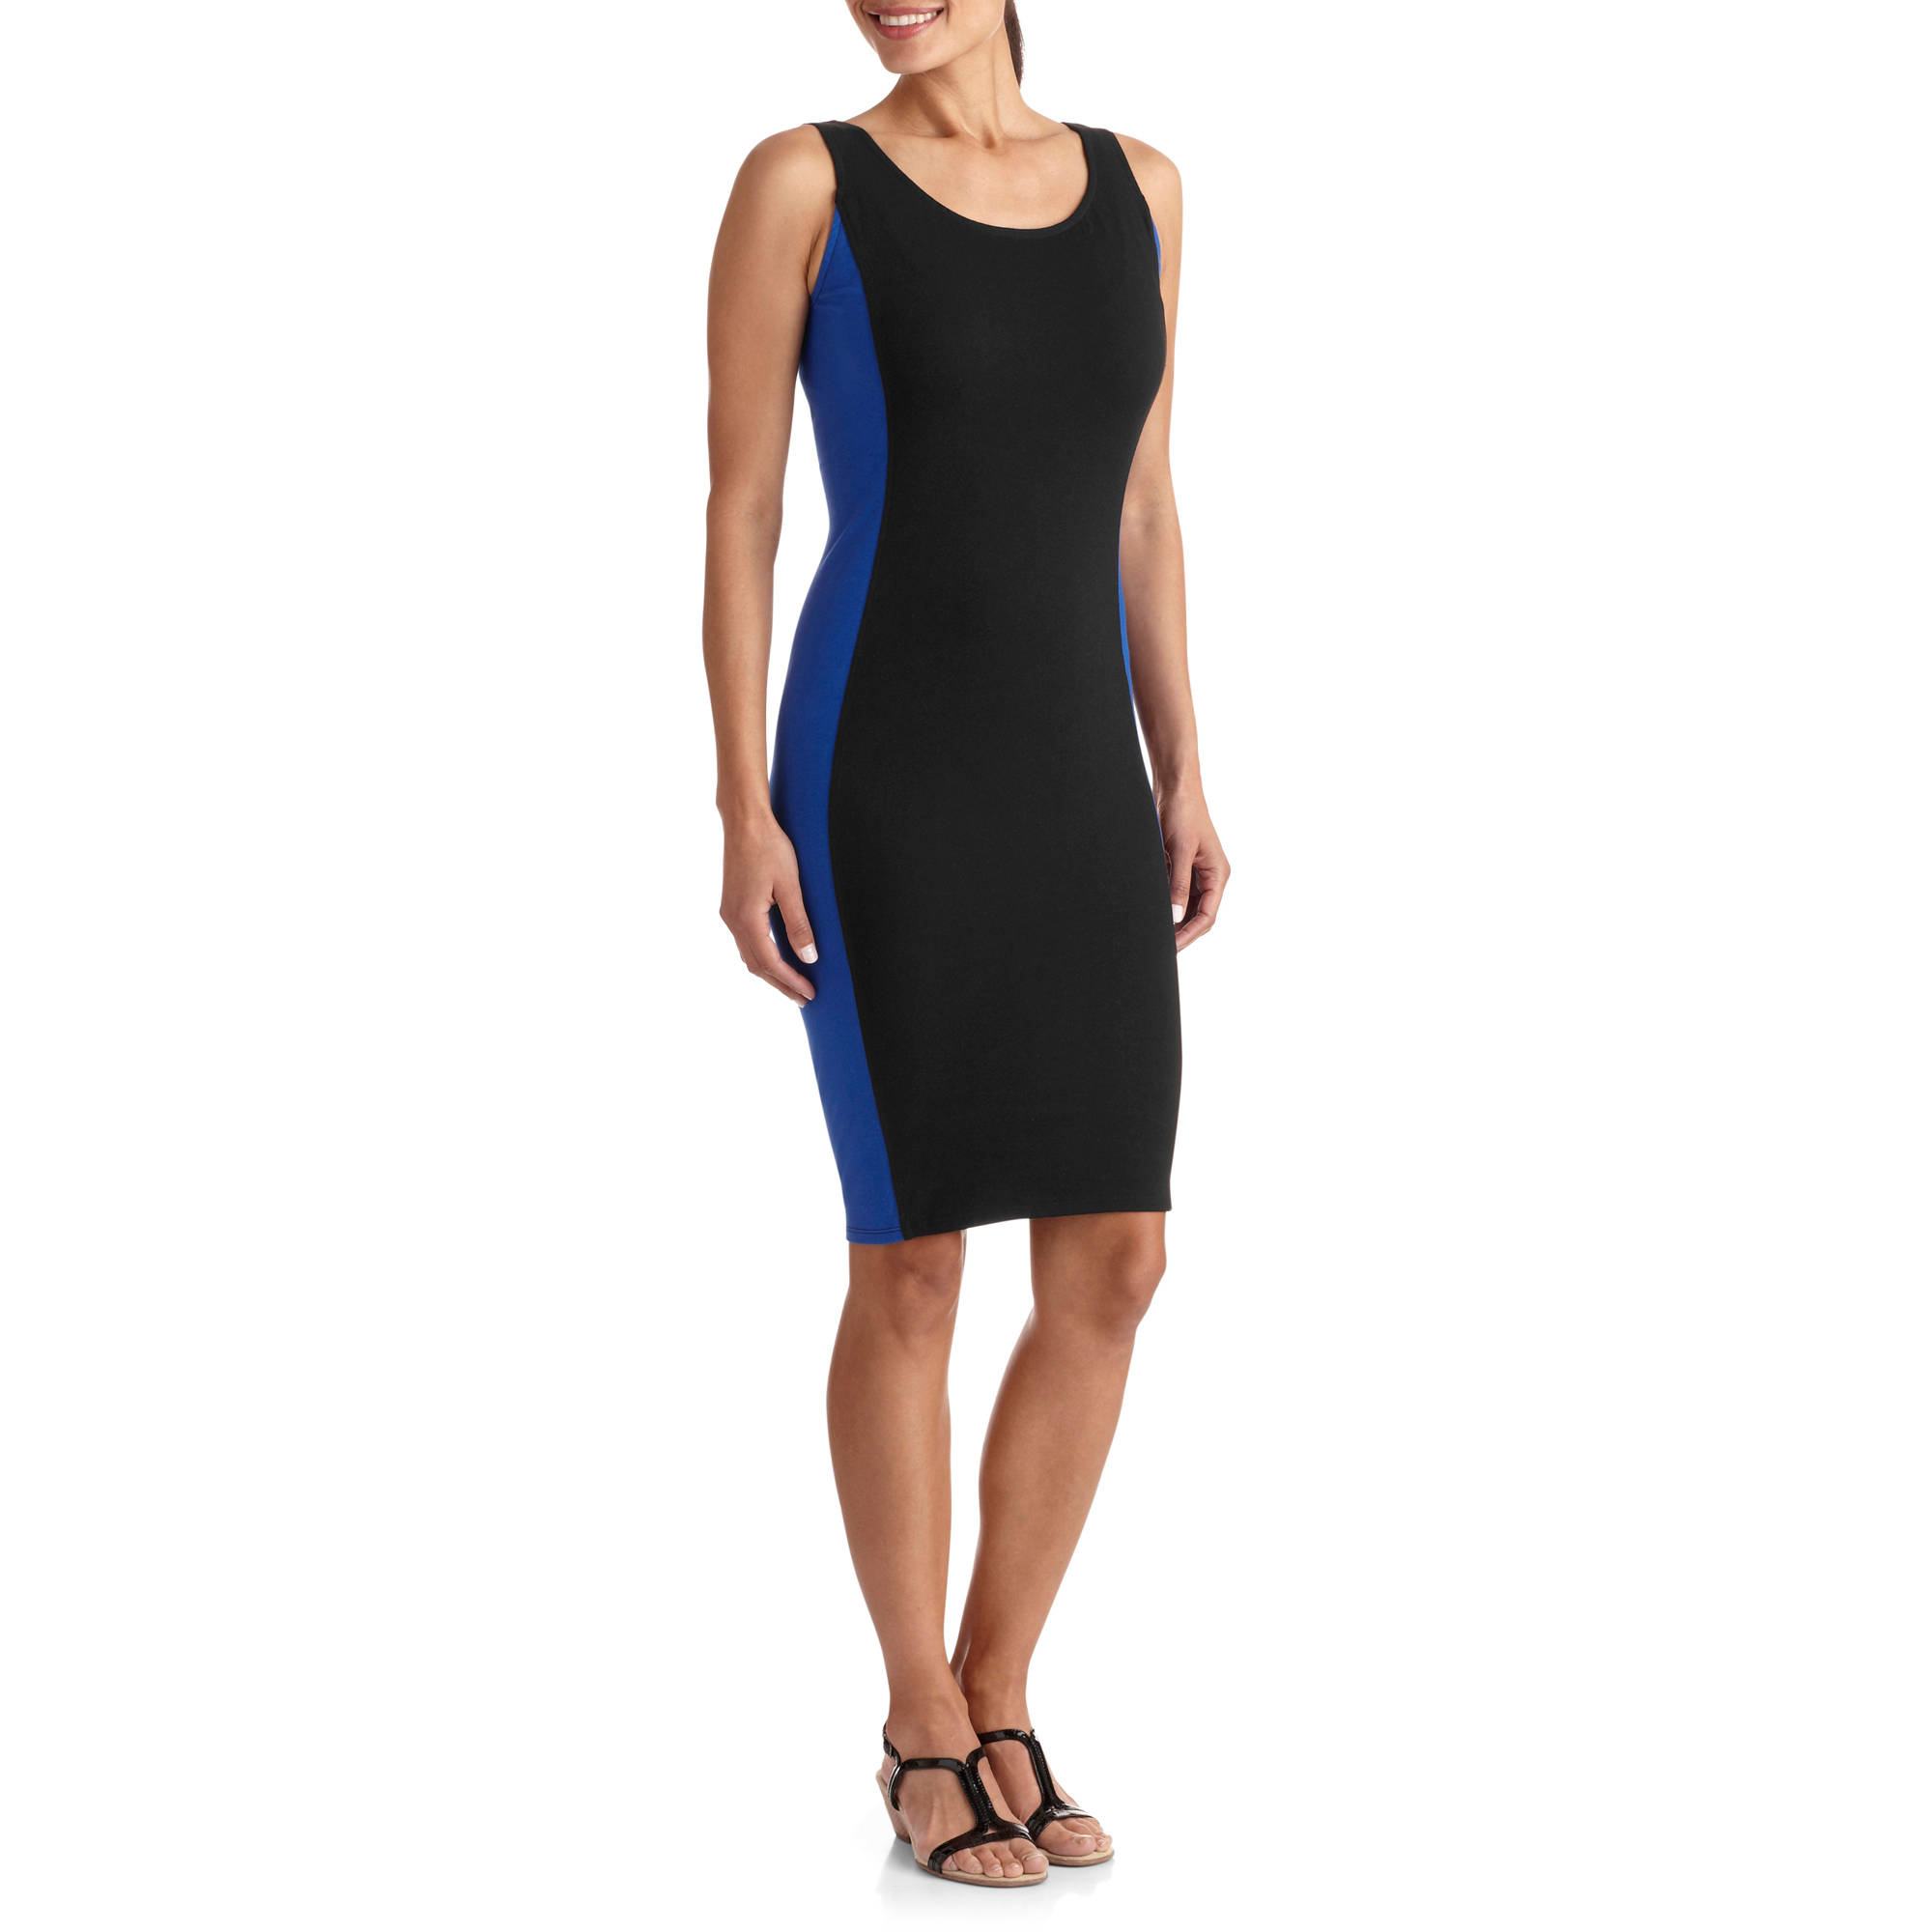 George Women's Bodycon Dress